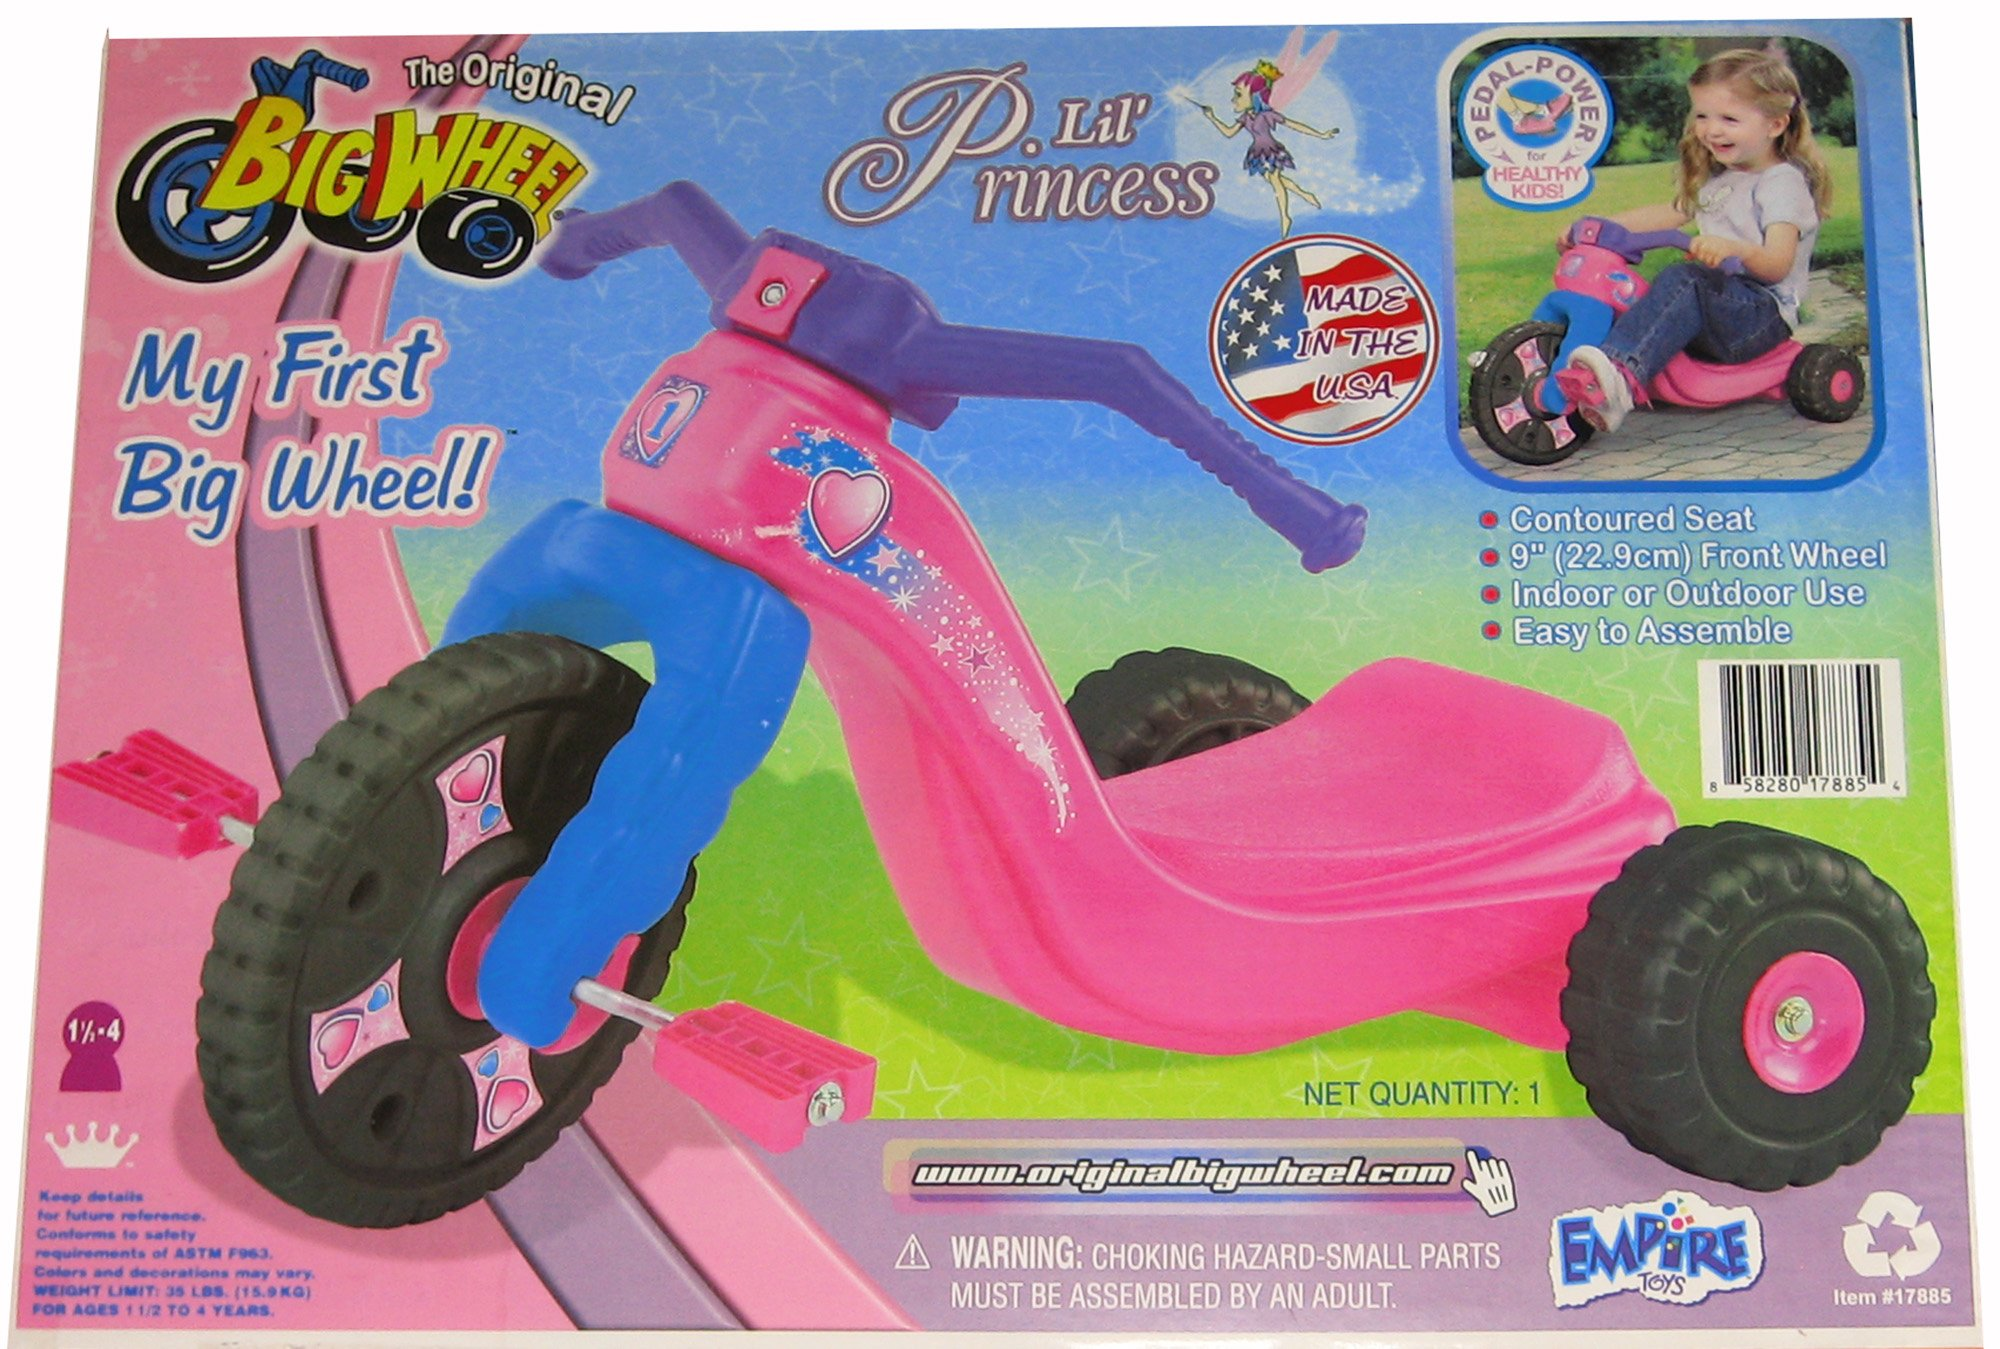 Little Princess My First Original Big Wheel for Girls 9'' Trike with Black Wheels